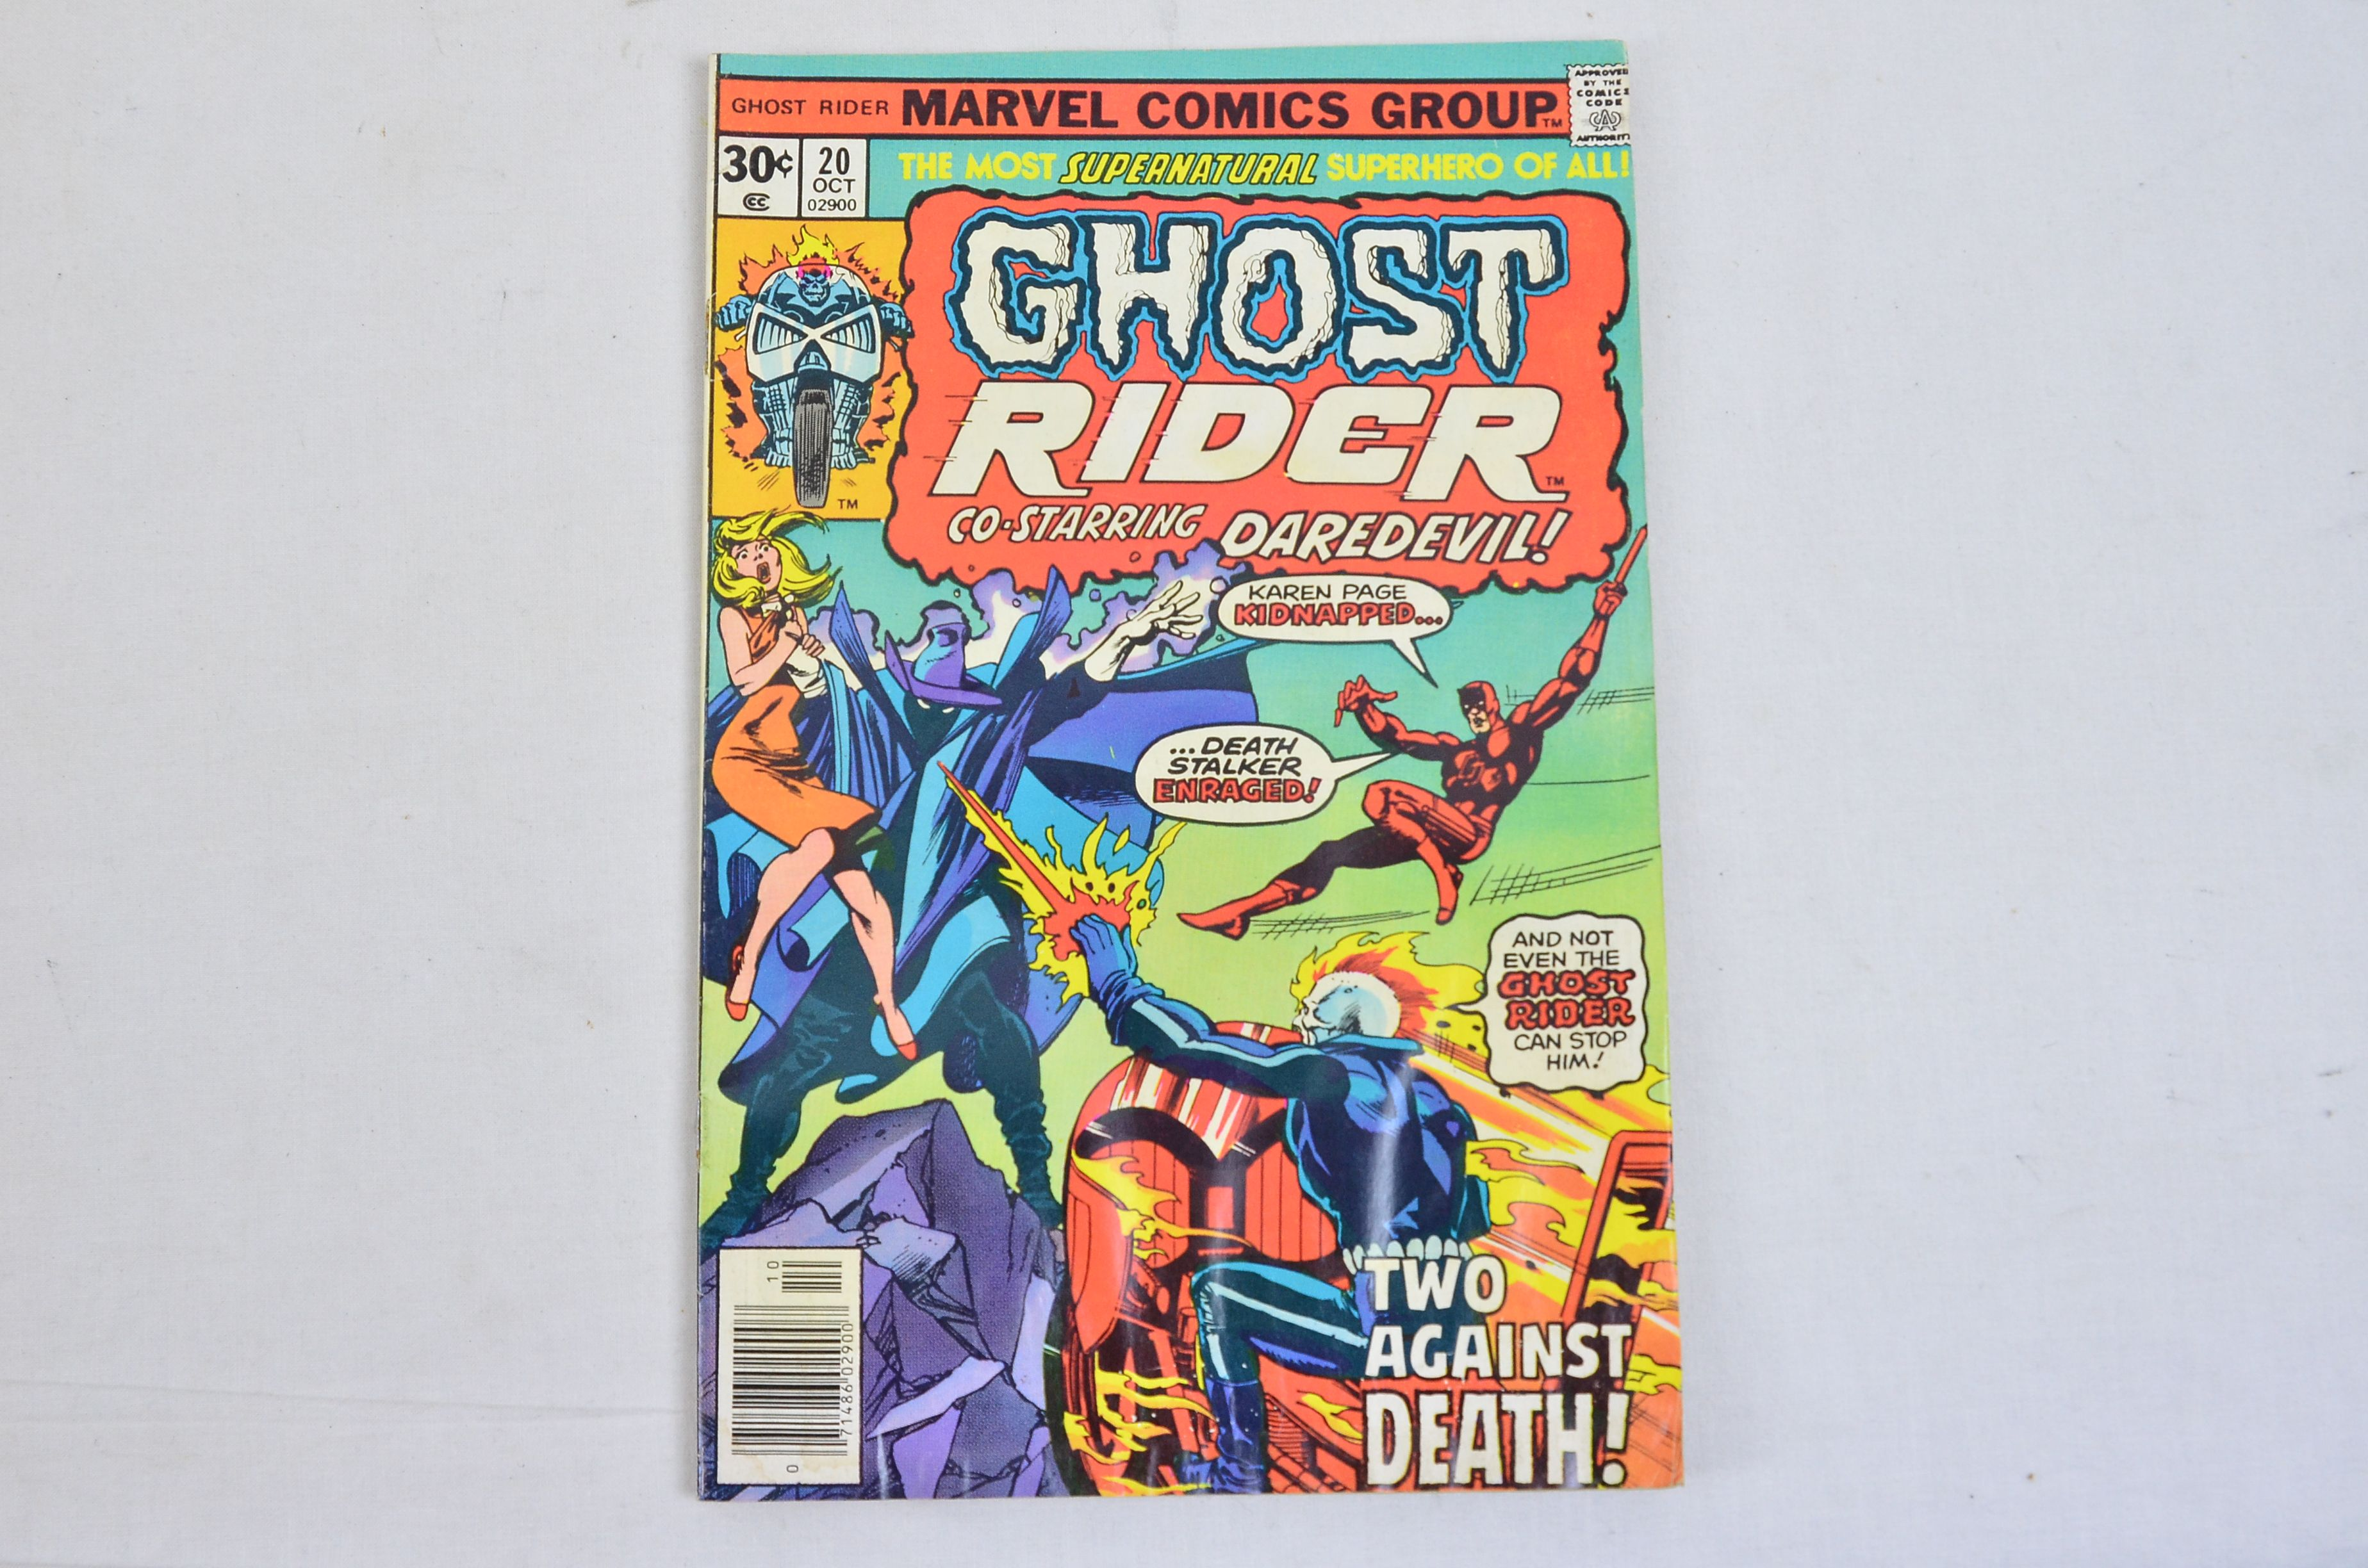 Vintage Marvel Comics Group Ghost Rider Co-Starring Daredevil Collectable Comic 3